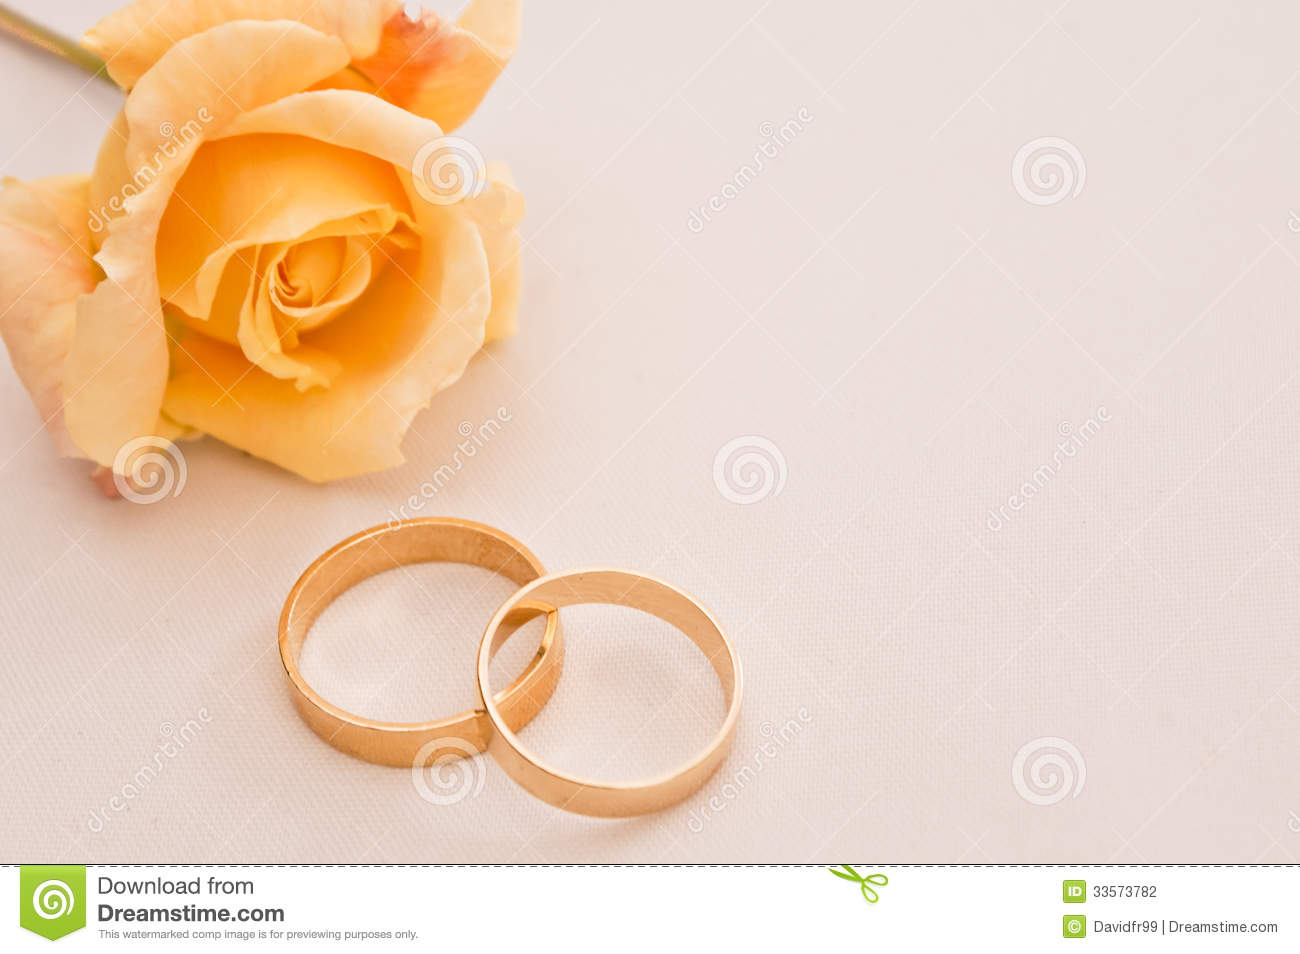 Wedding Rings On A Cream Background With Yellow Rose Space To Add Copy: Yellow Roses Wedding Rings At Reisefeber.org